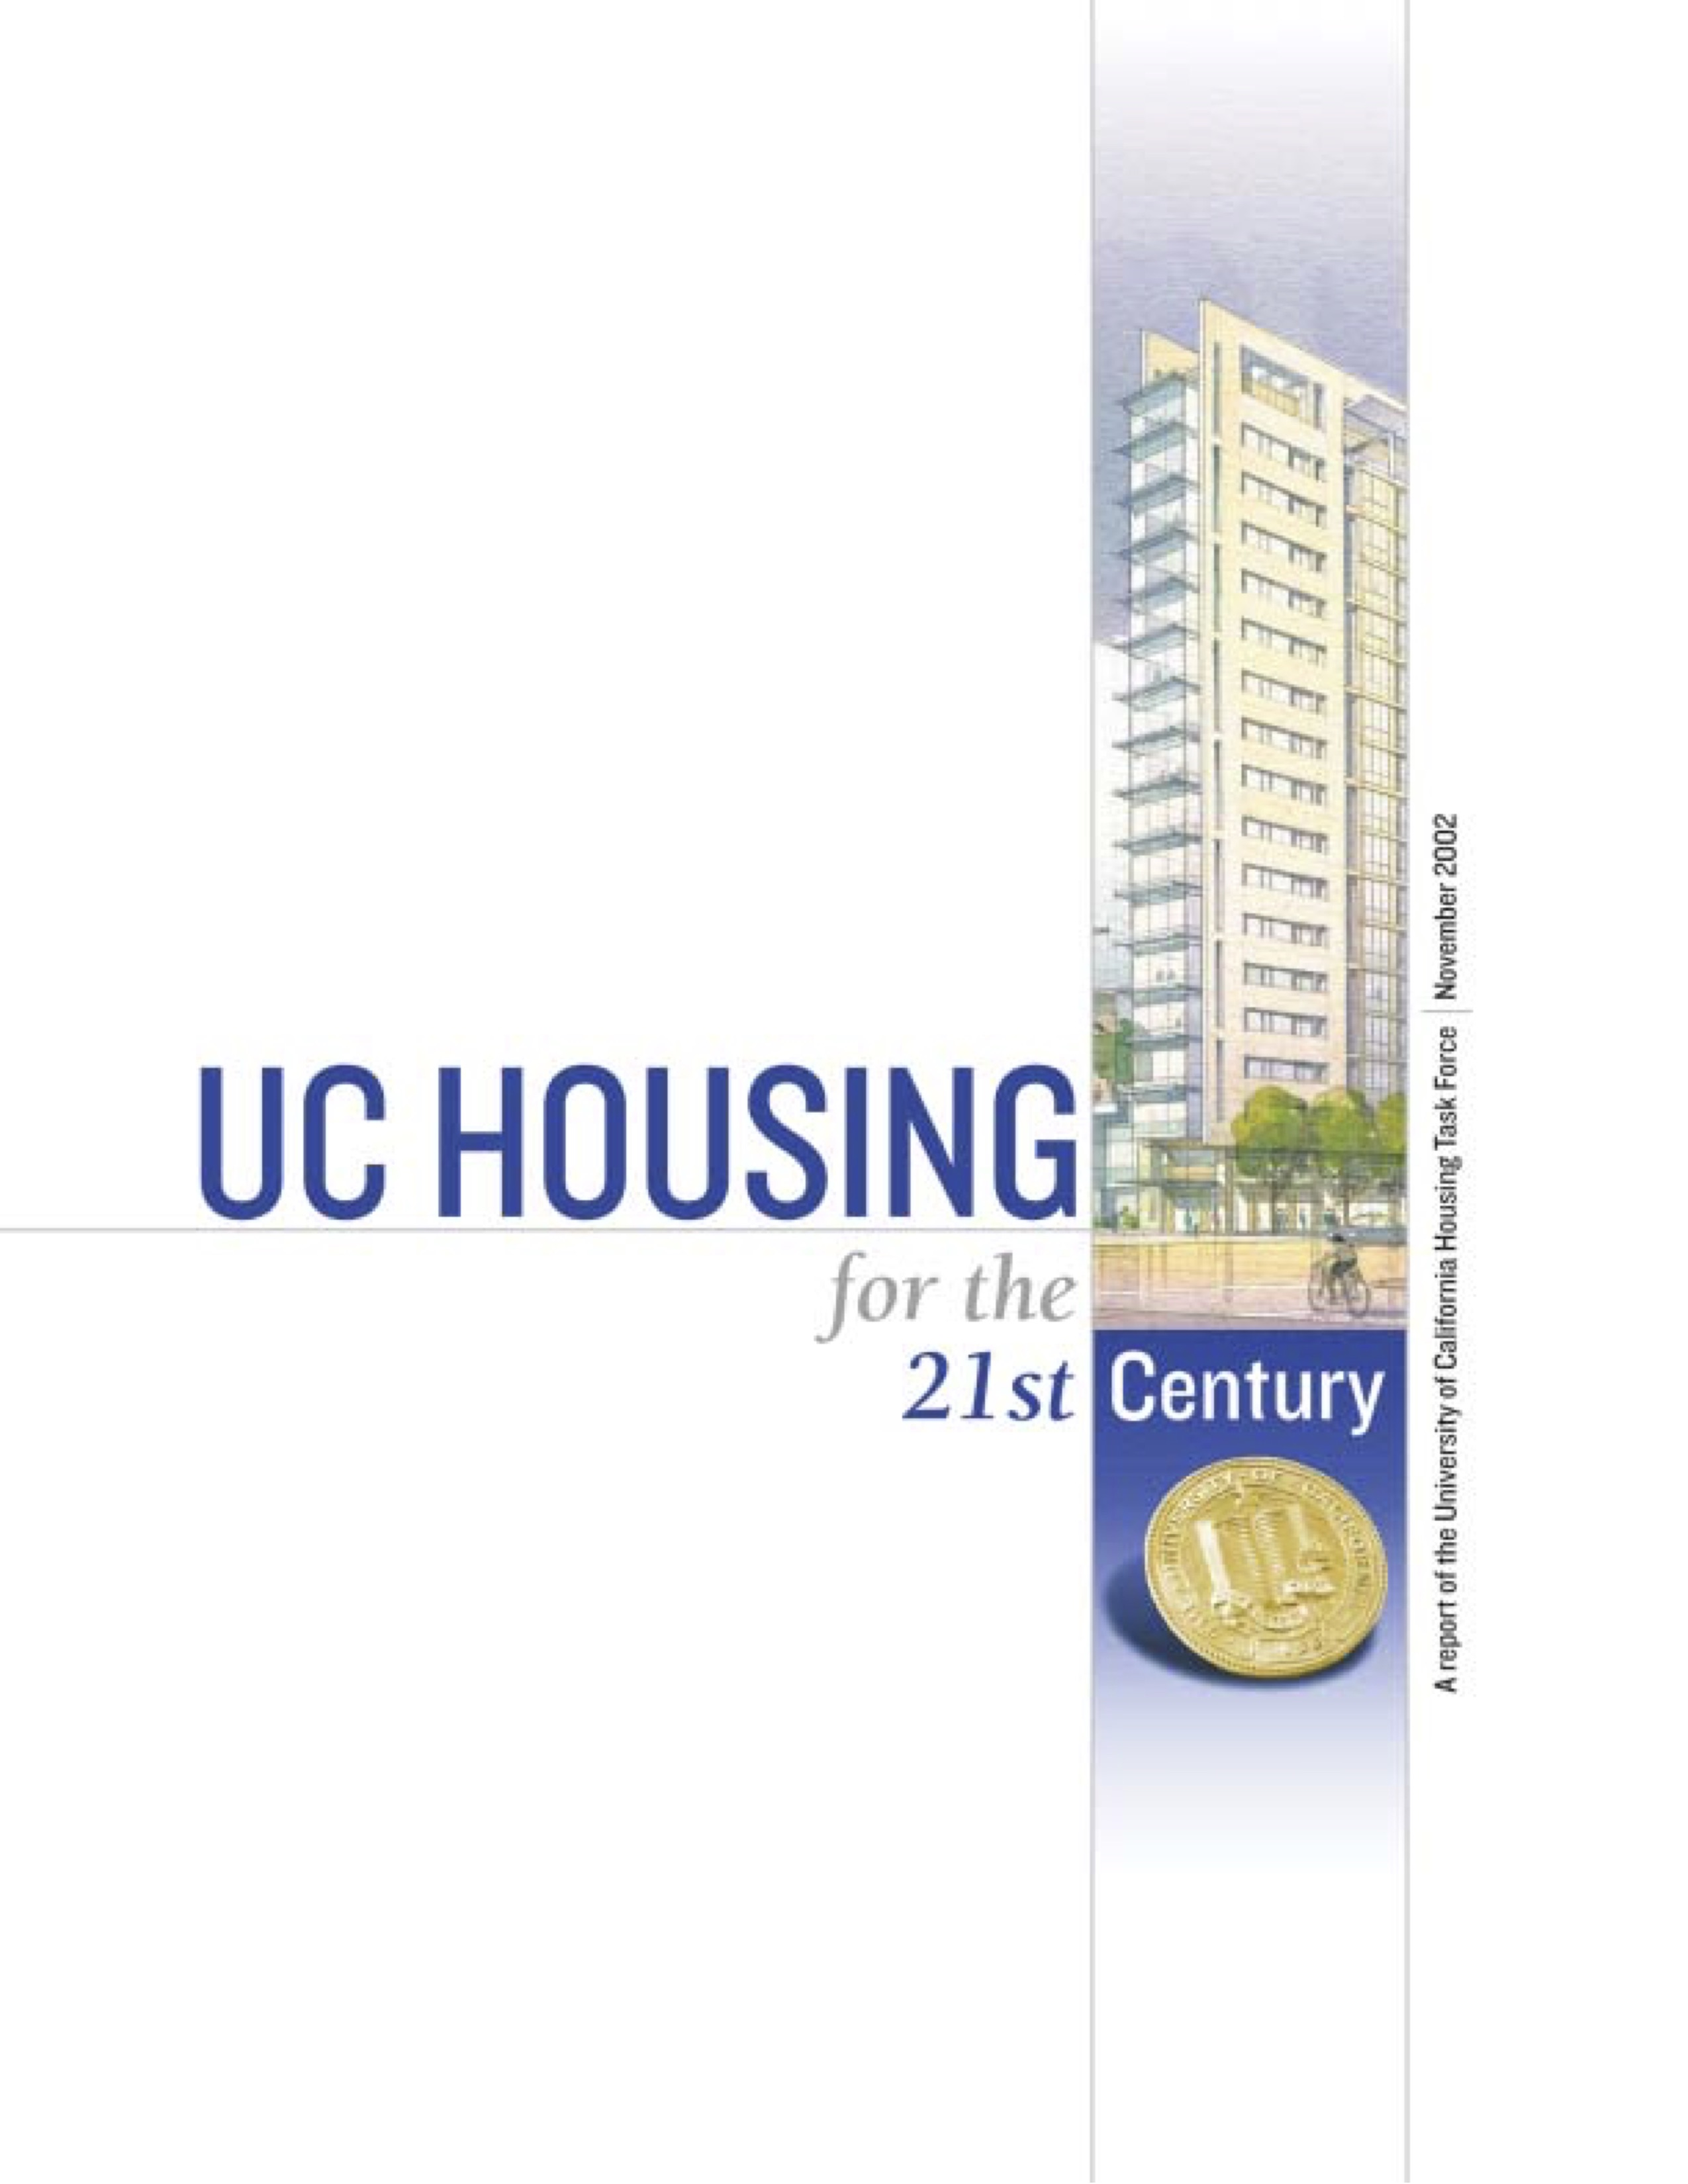 https://www.davisvanguard.org/wp-content/uploads/2020/08/2002-11-01-UC-Housing-in-the-21st-Century.jpg